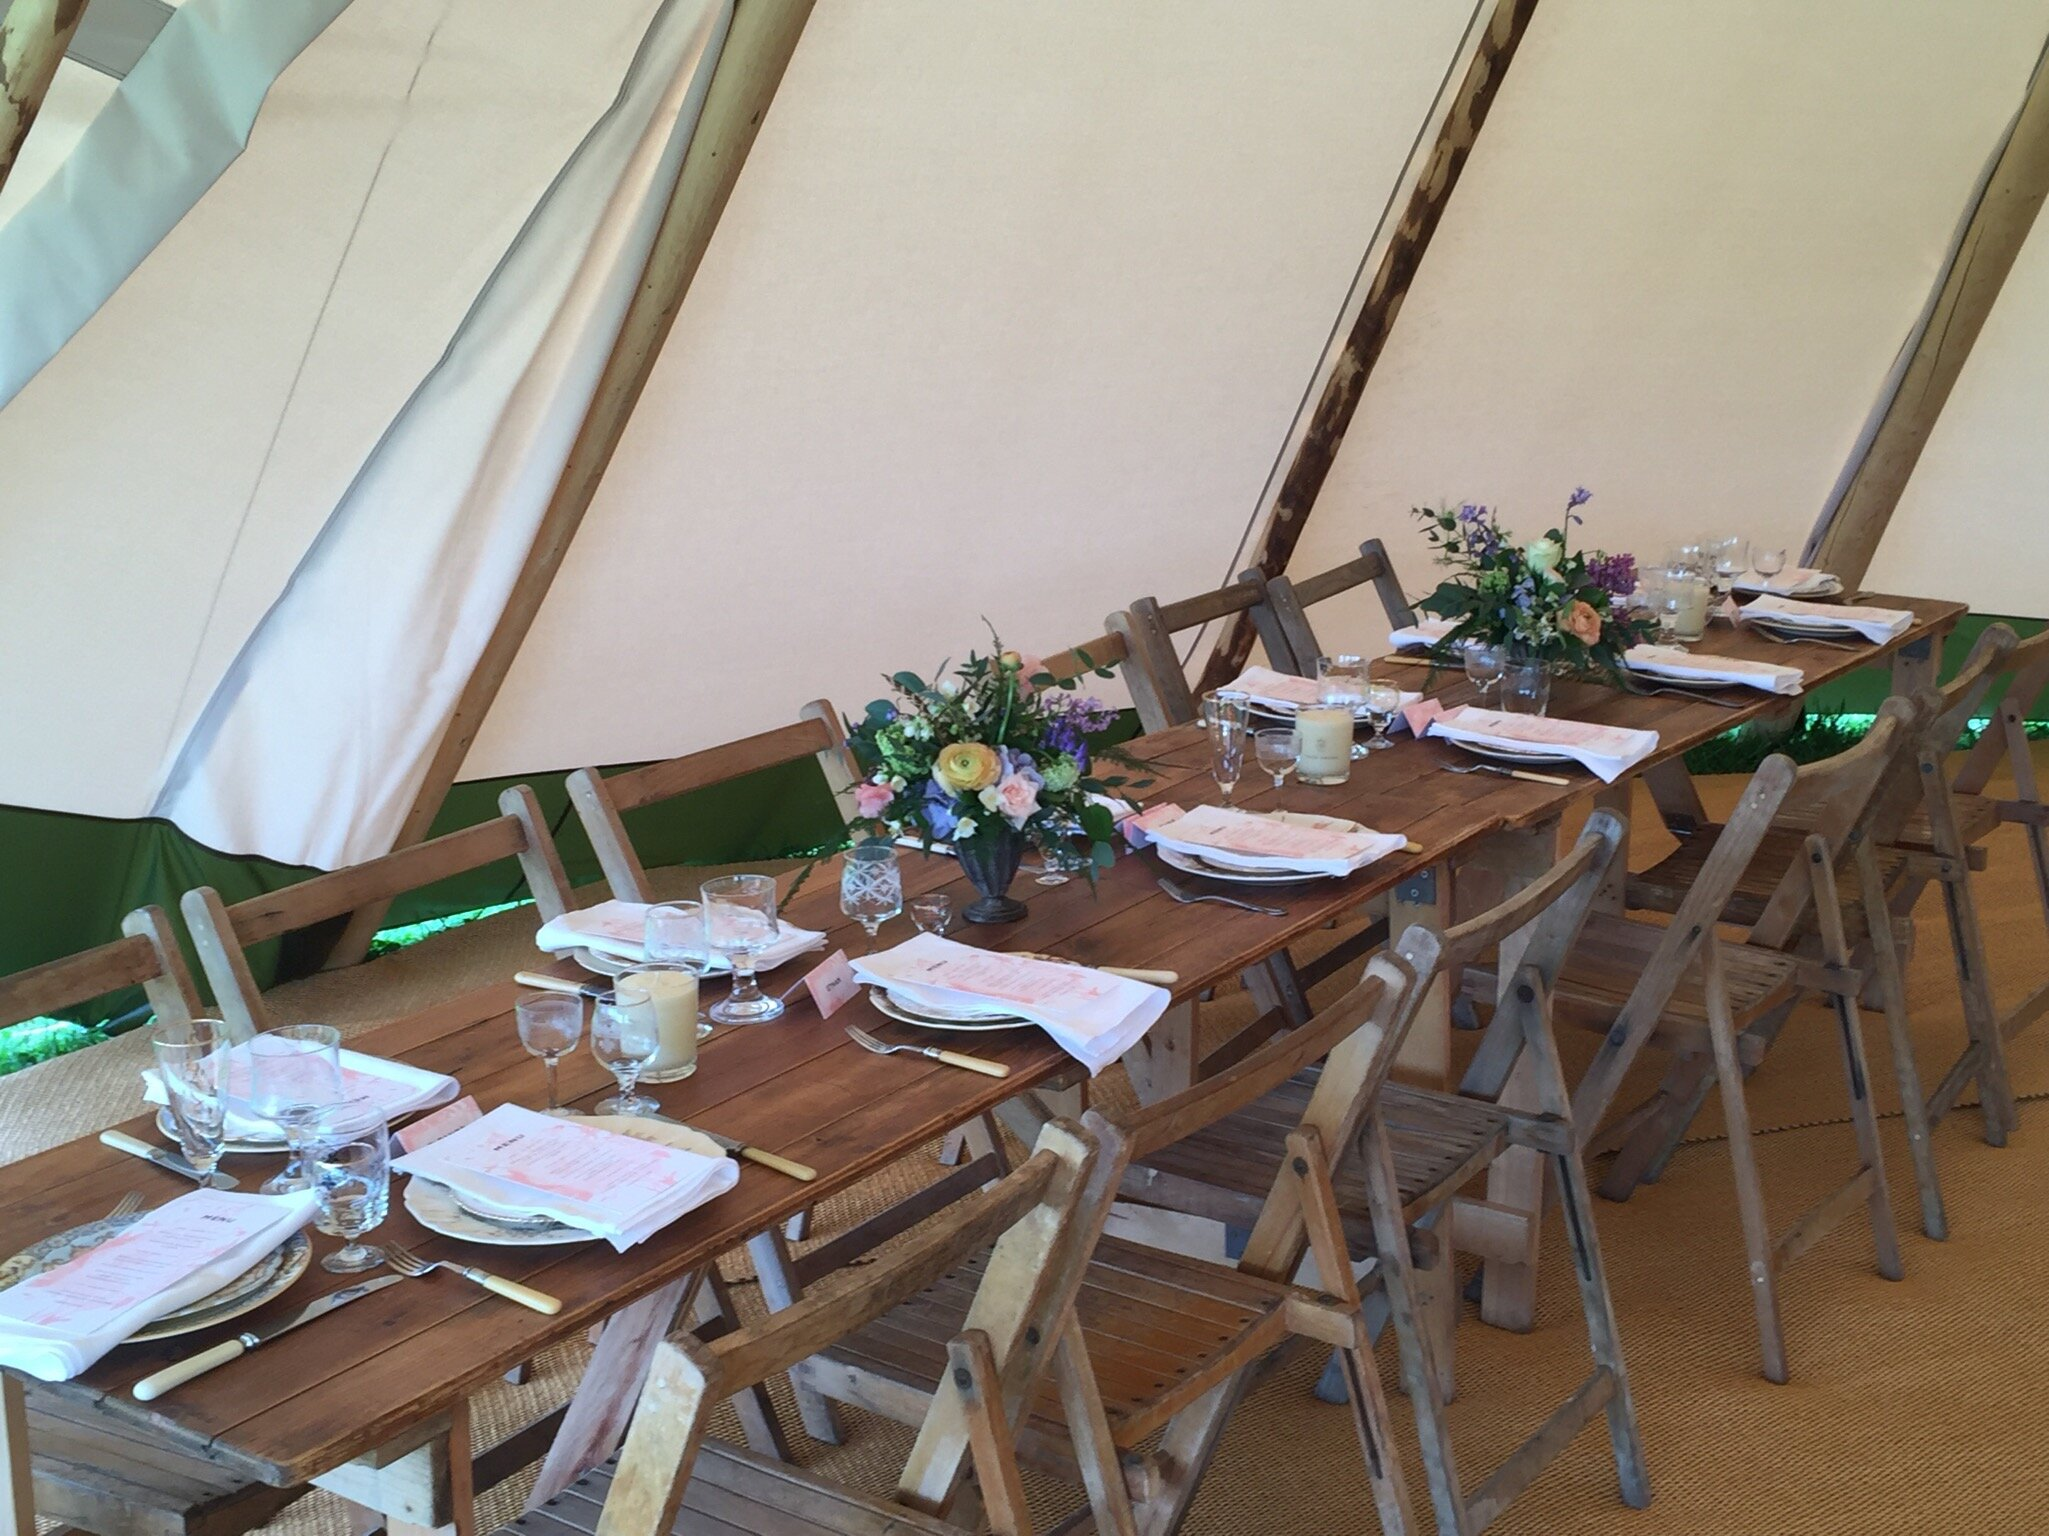 FURNITURE & ACCESSORIES PRICE LIST - BEAUTIFUL ADDITIONS FOR YOUR TIPI